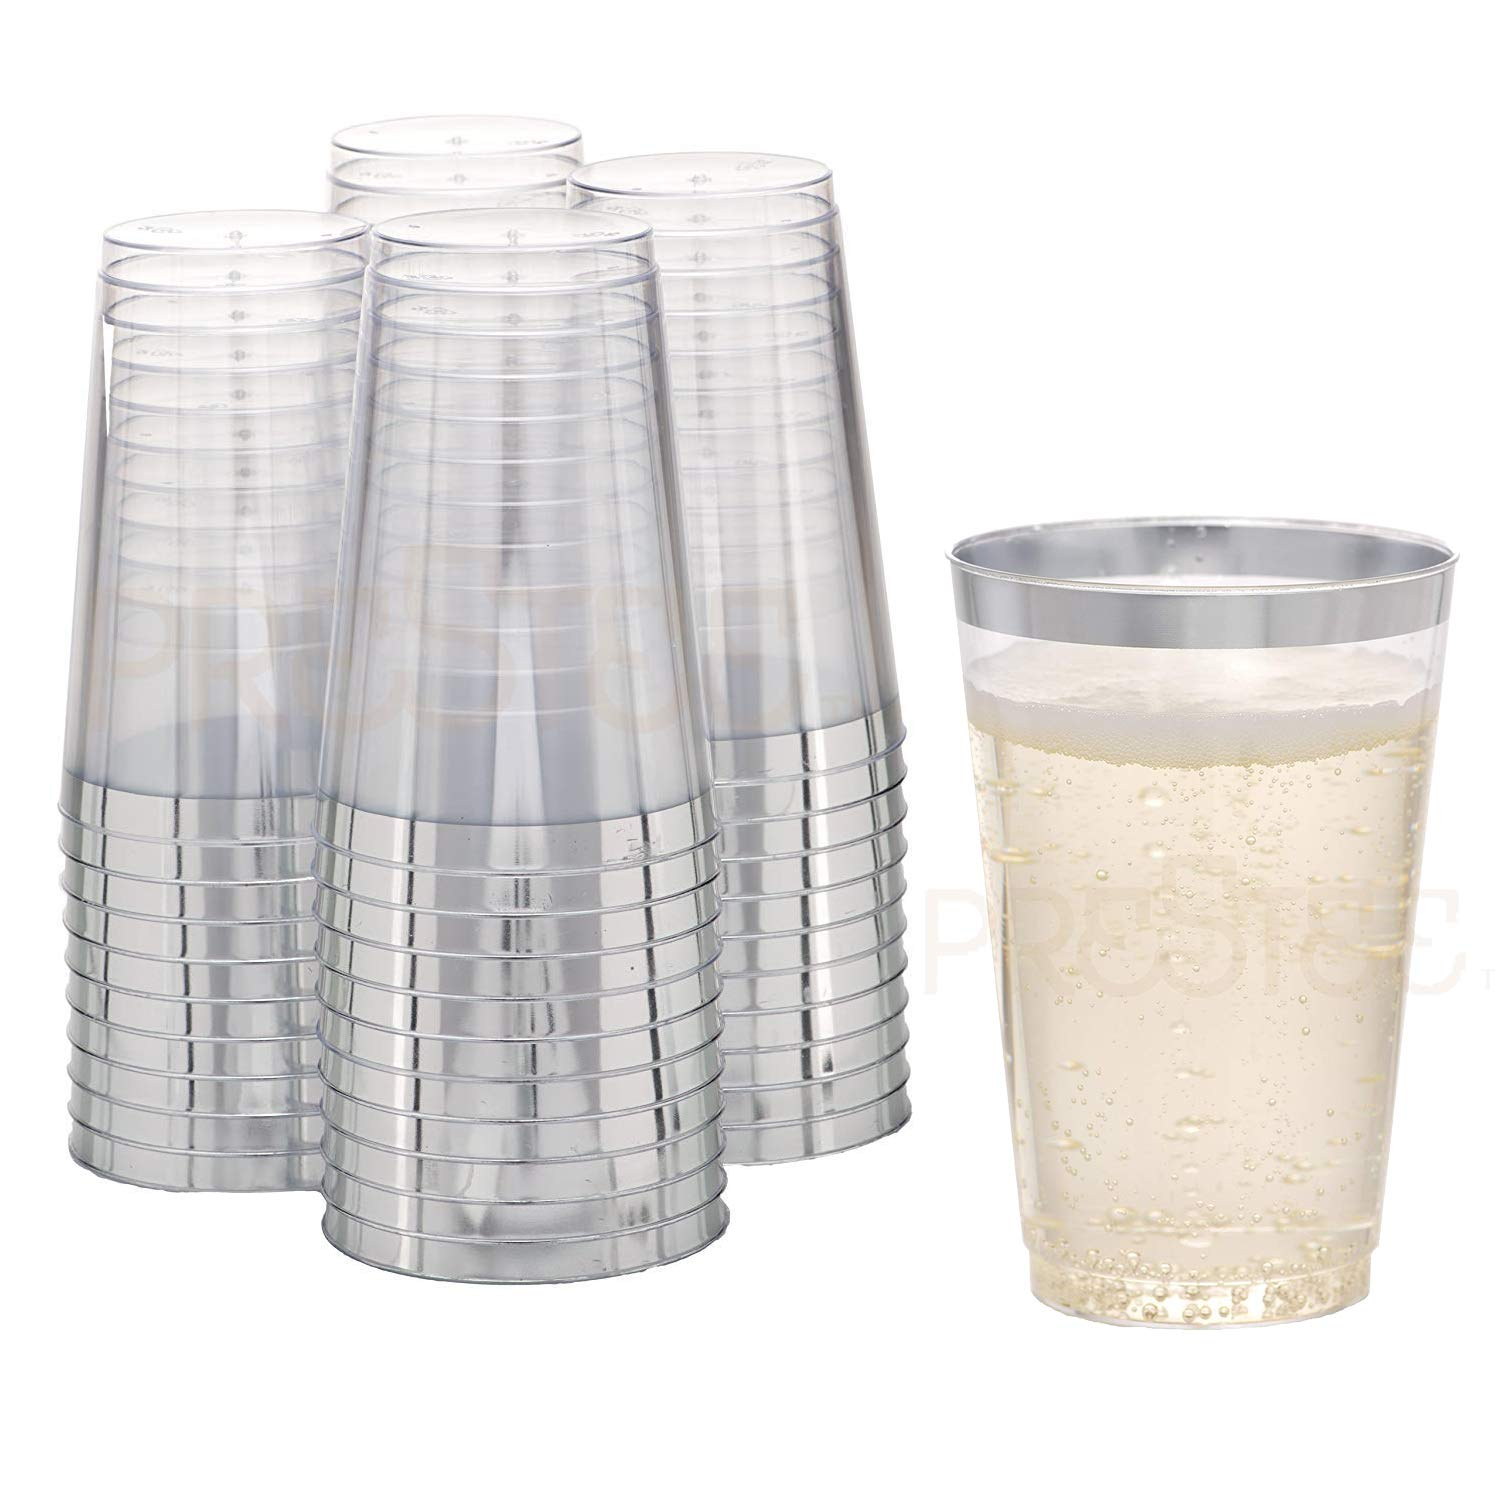 DRINKET Silver Plastic Cups 14 oz Clear Plastic Cups   Tumblers Fancy Plastic Wedding Cups with Silver Rim 50 Ct Disposable for Party Holiday and Occasions